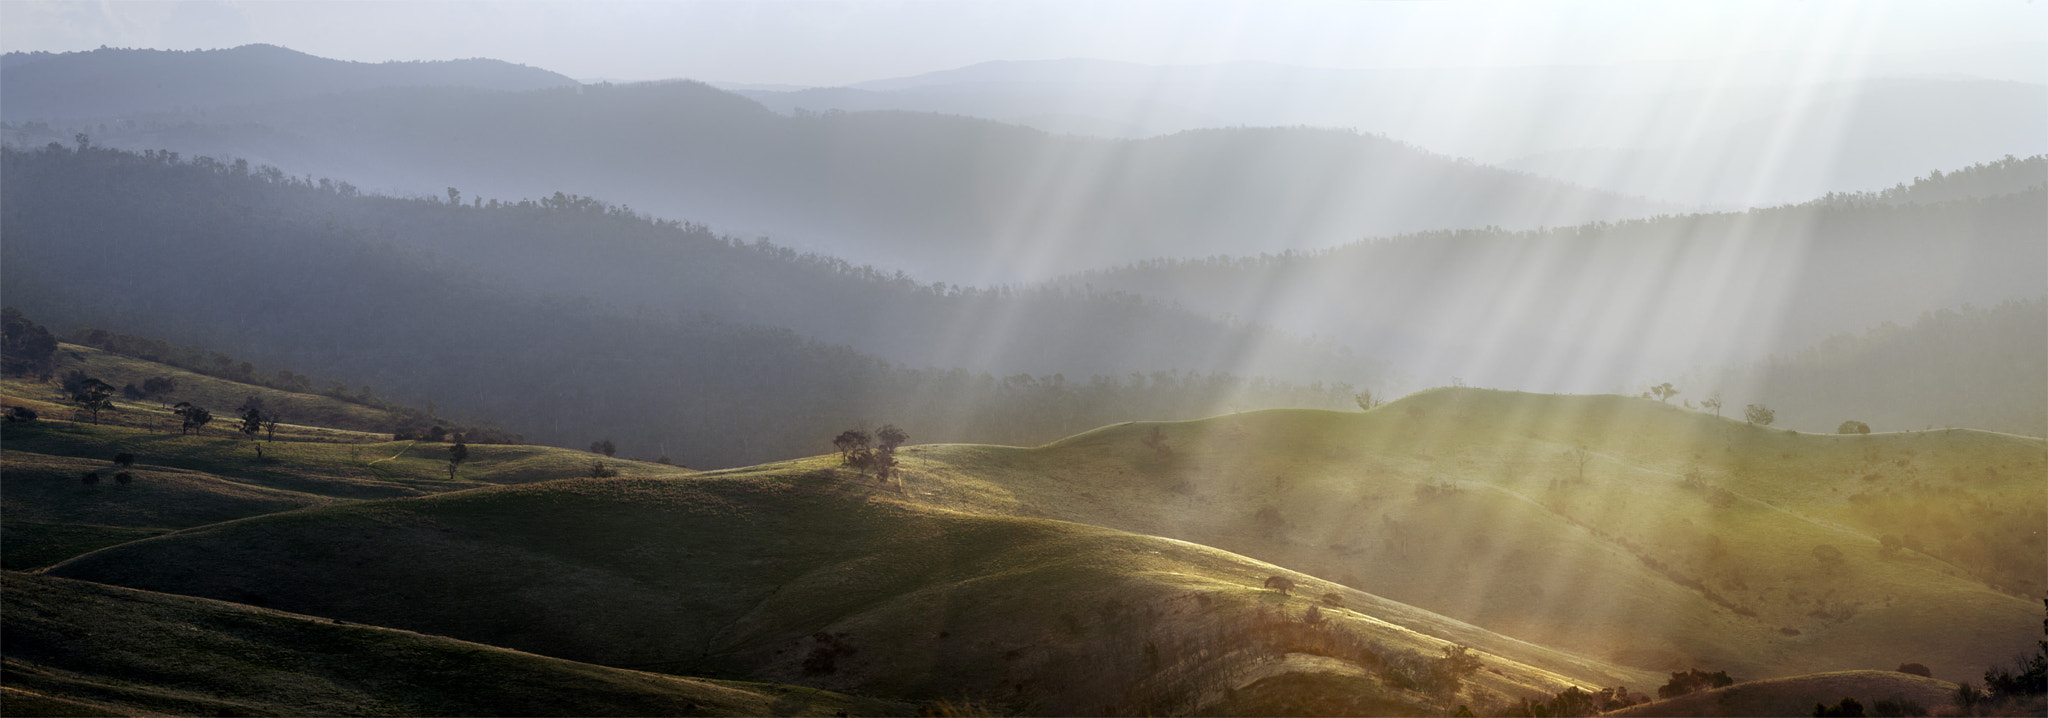 Photograph Victorian High Country by Nathan Oxley on 500px